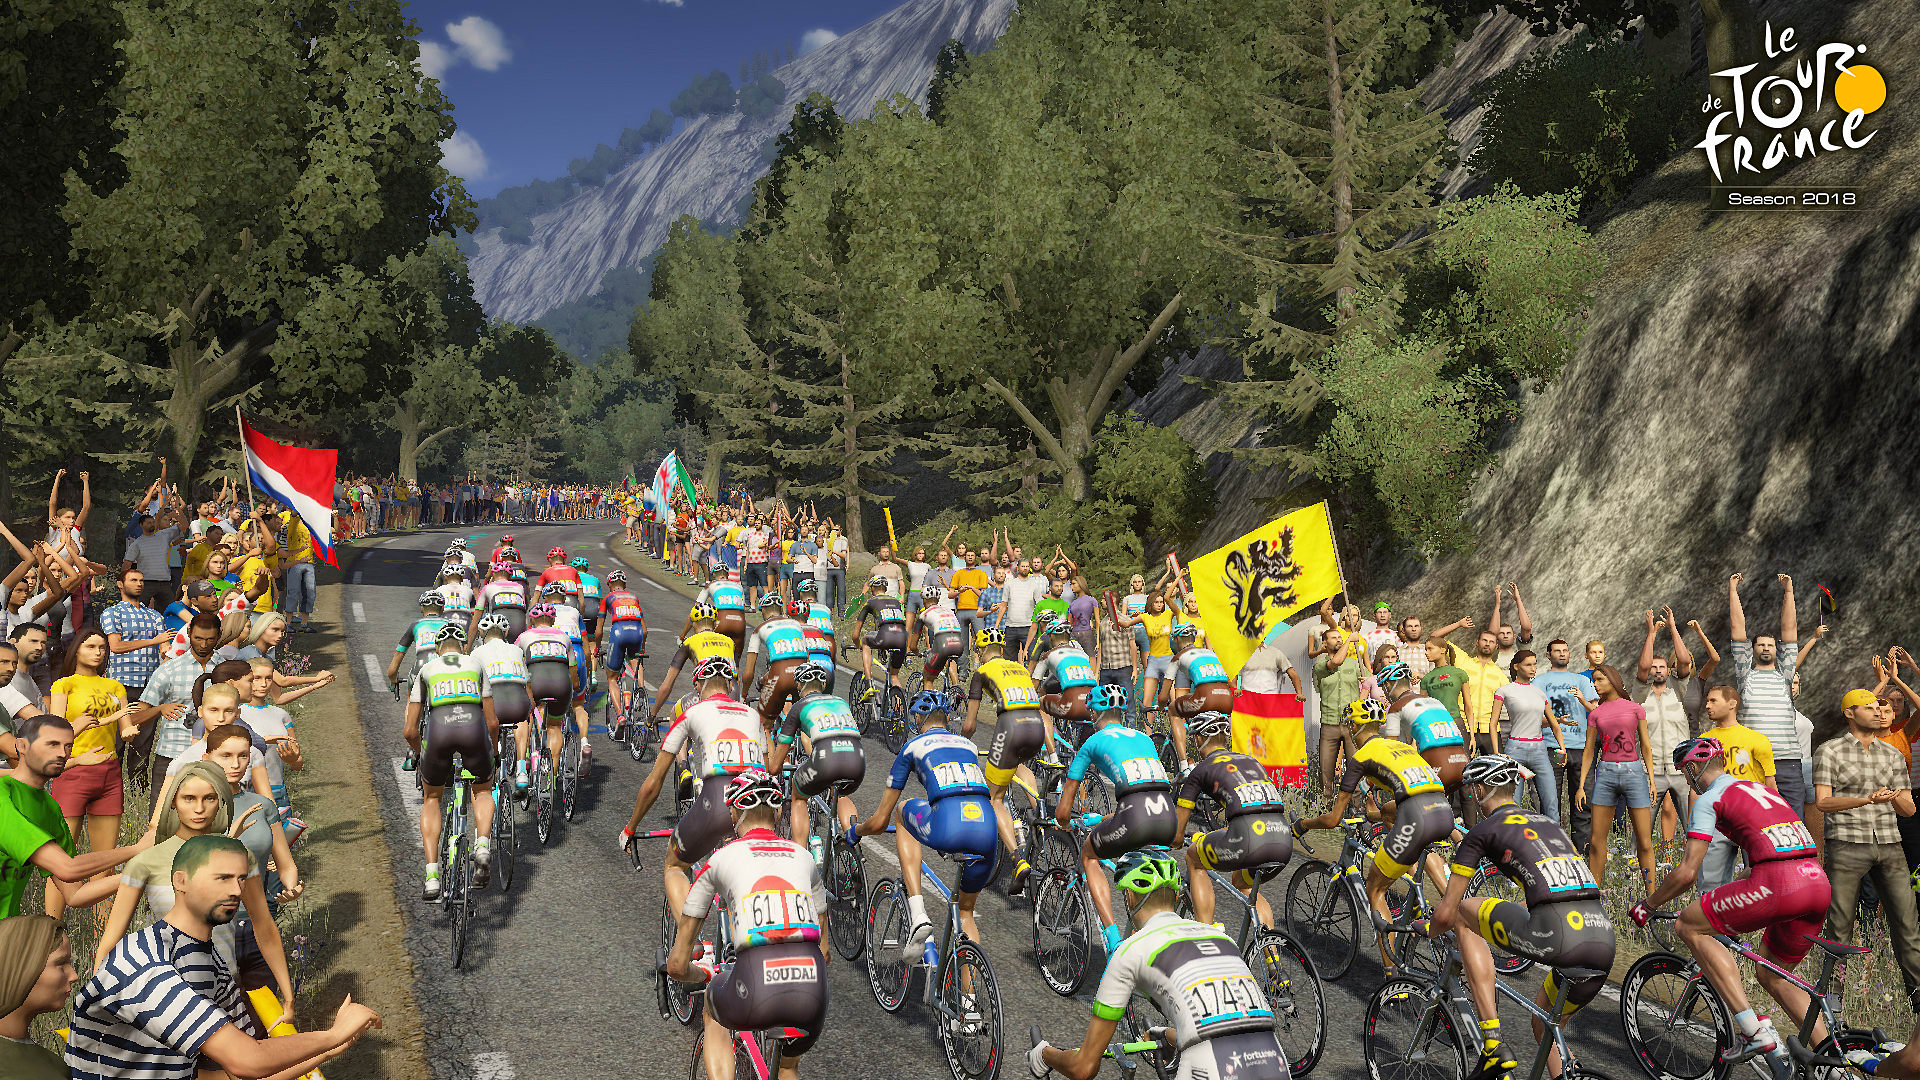 Buy Tour de France 2018 on Xbox One   Free UK Delivery   GAME Tour de France 2018